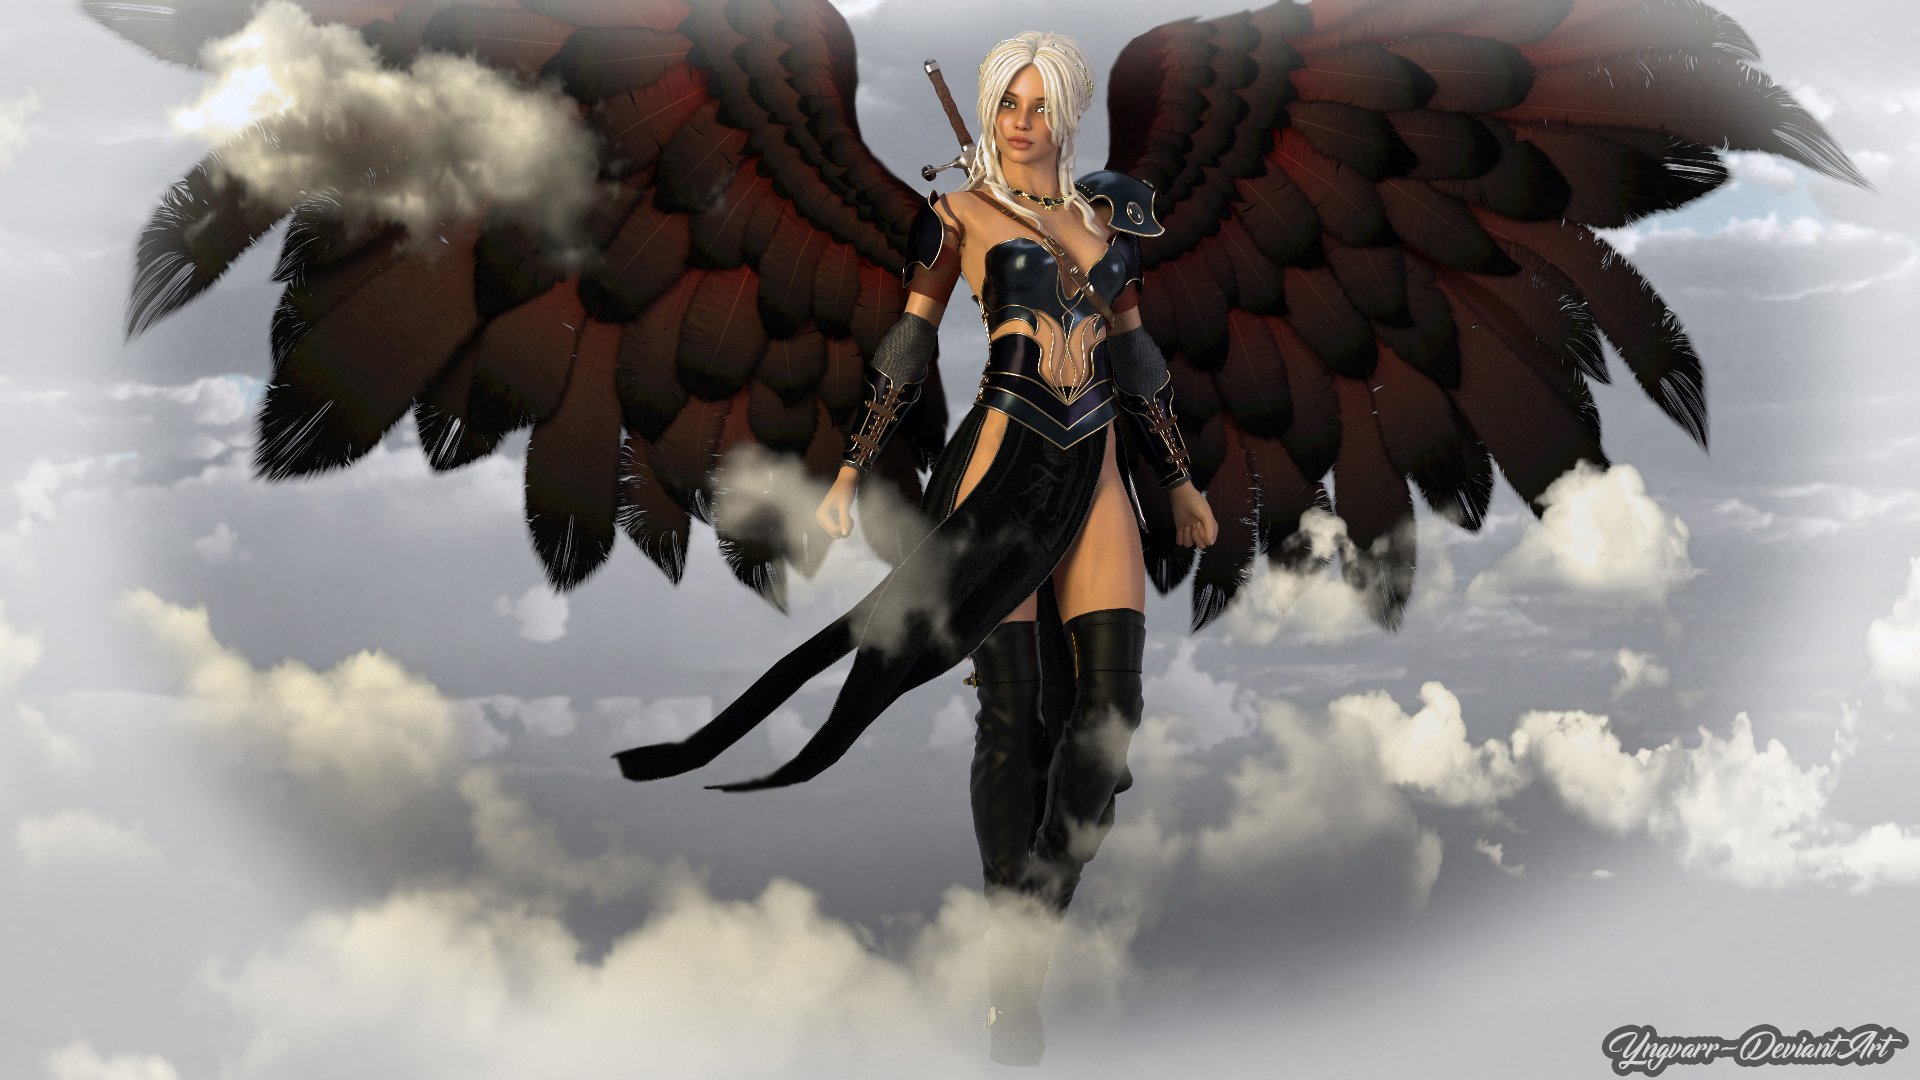 Fantasy - Angel  Girl Woman Warrior Wallpaper